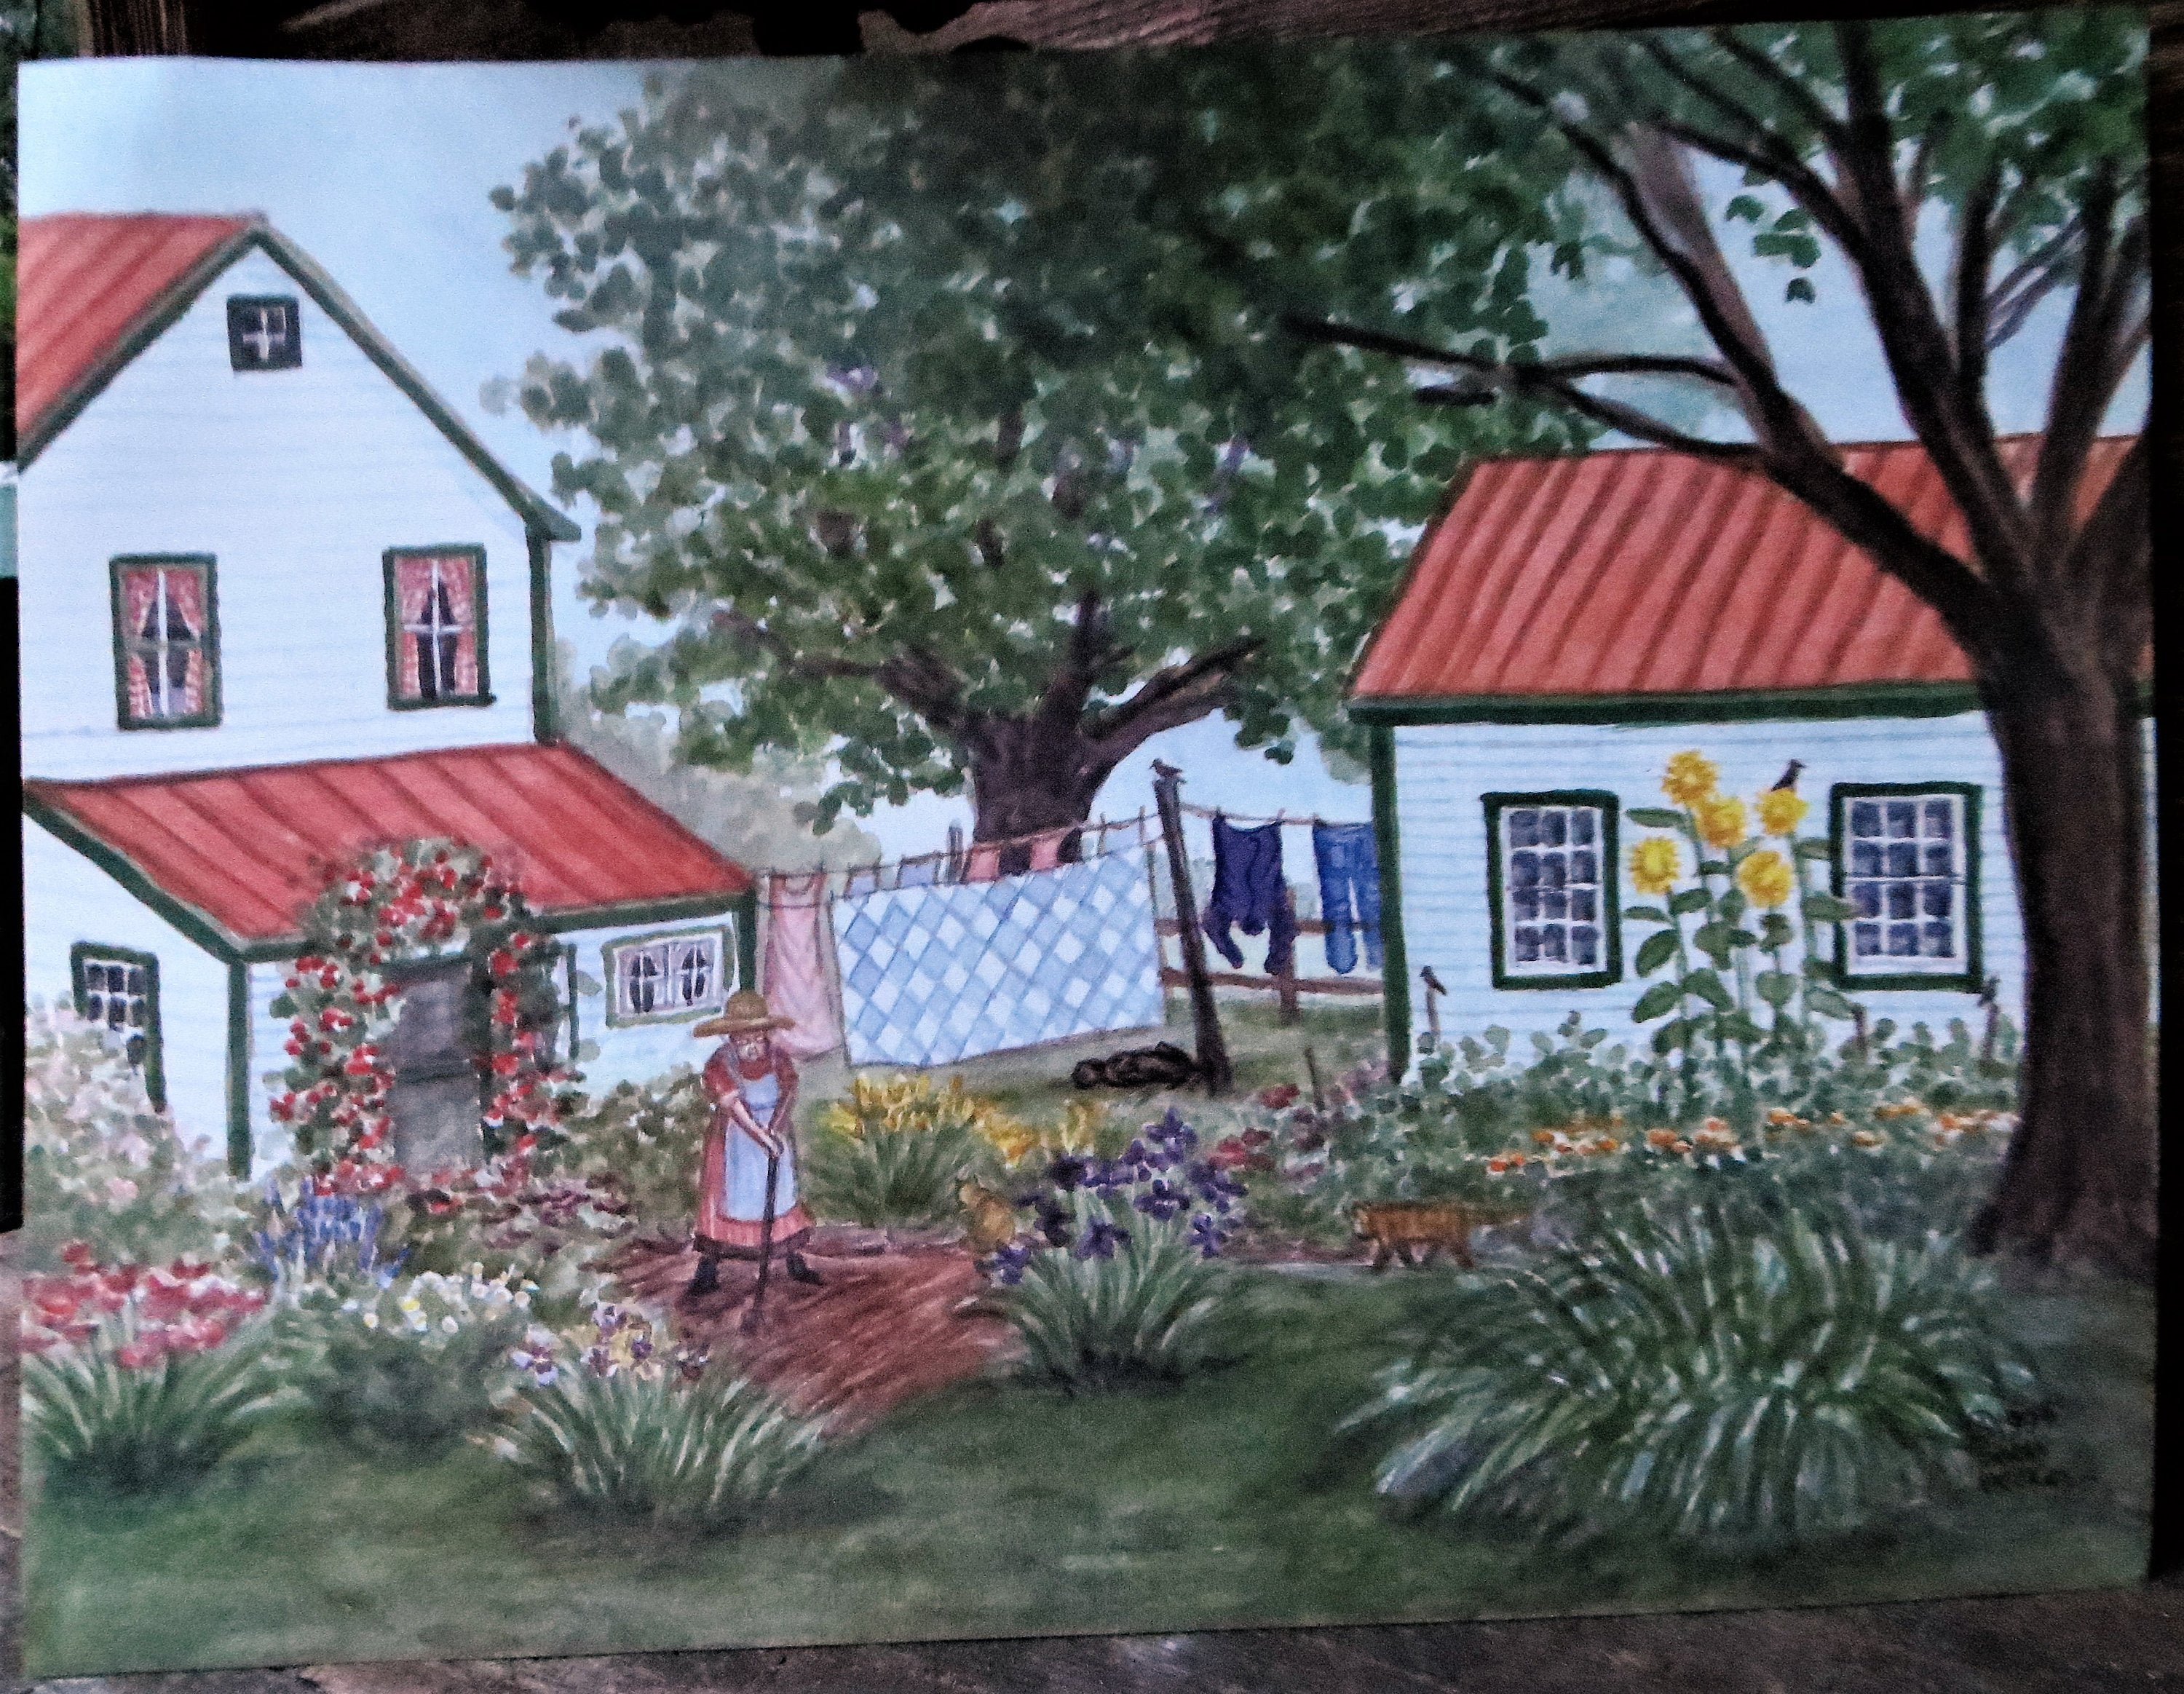 Grandmas garden, gardening, old farmhouse, garden lover, sunflowers, laundry on the line